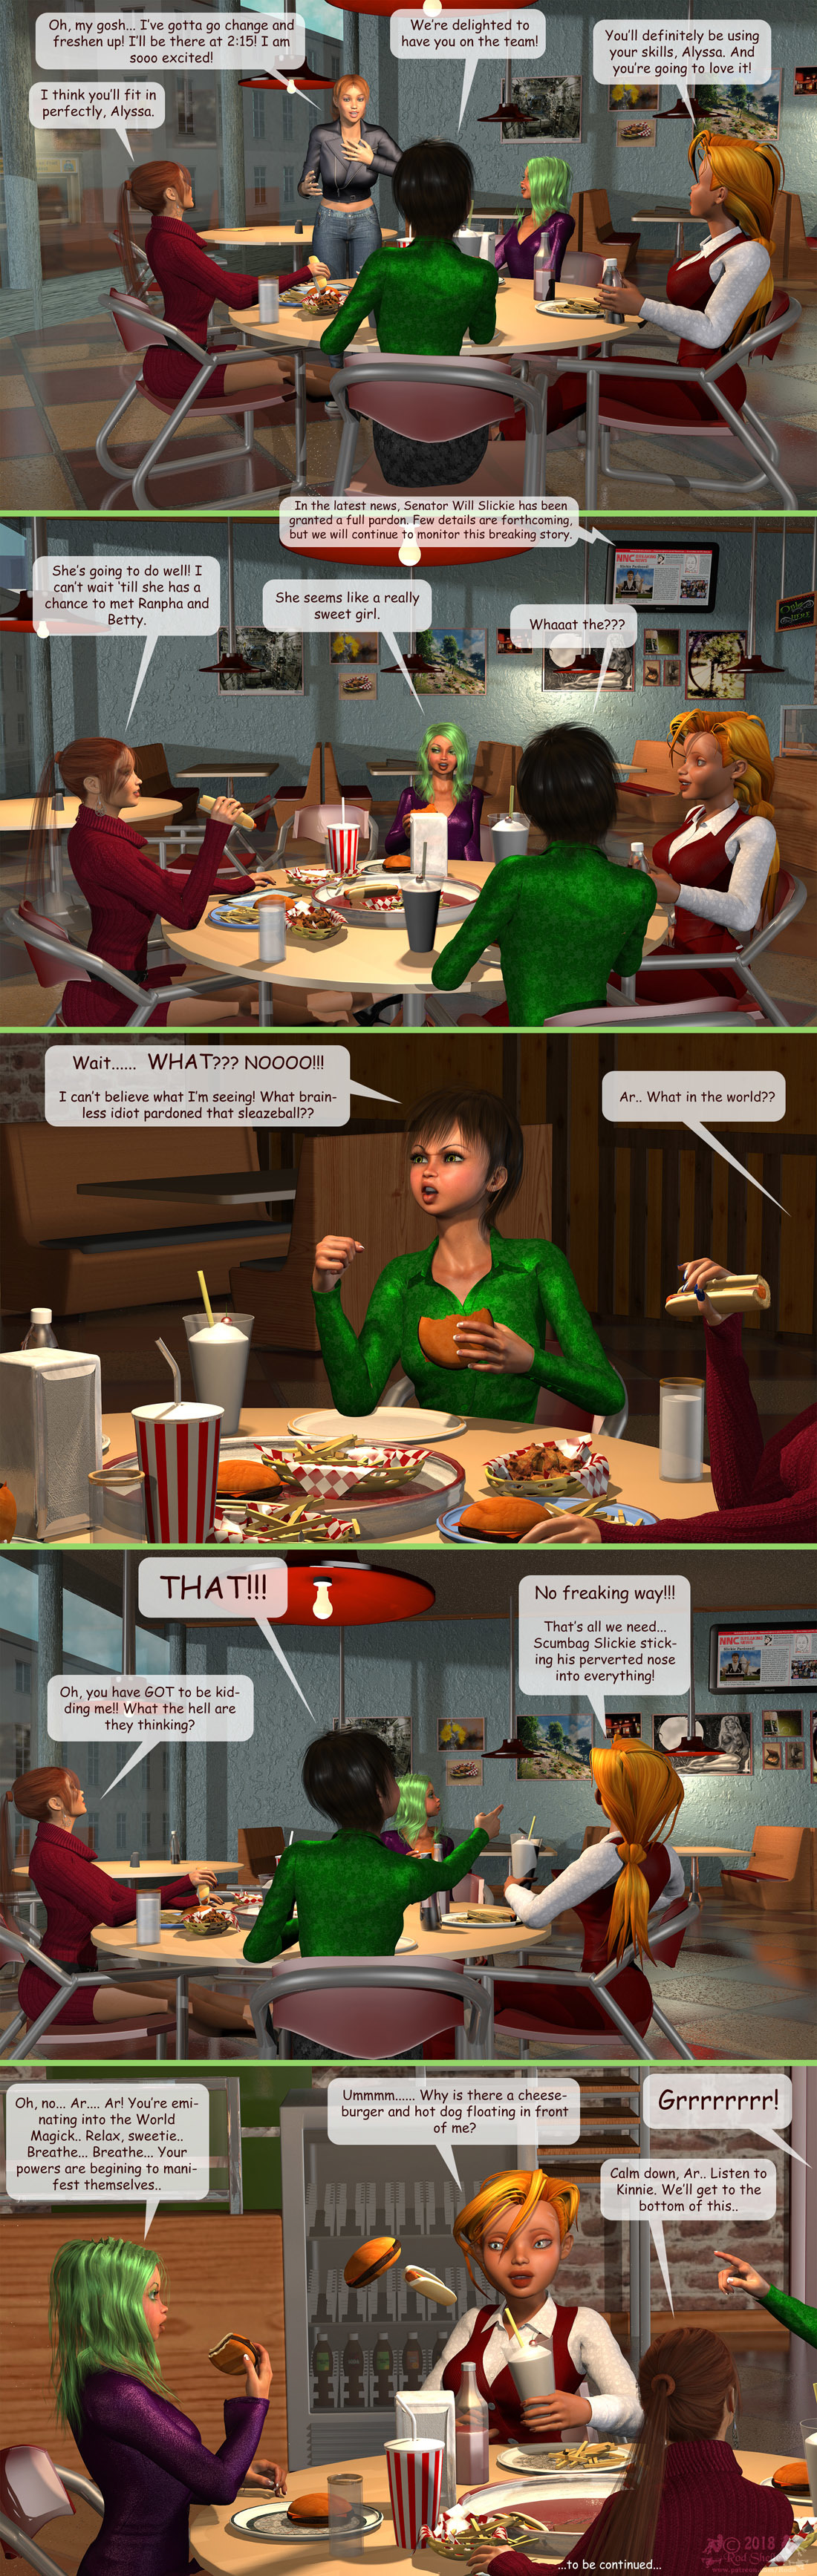 Girls From T.N.A: Breitlenger Jar: Ch 6 Page 26